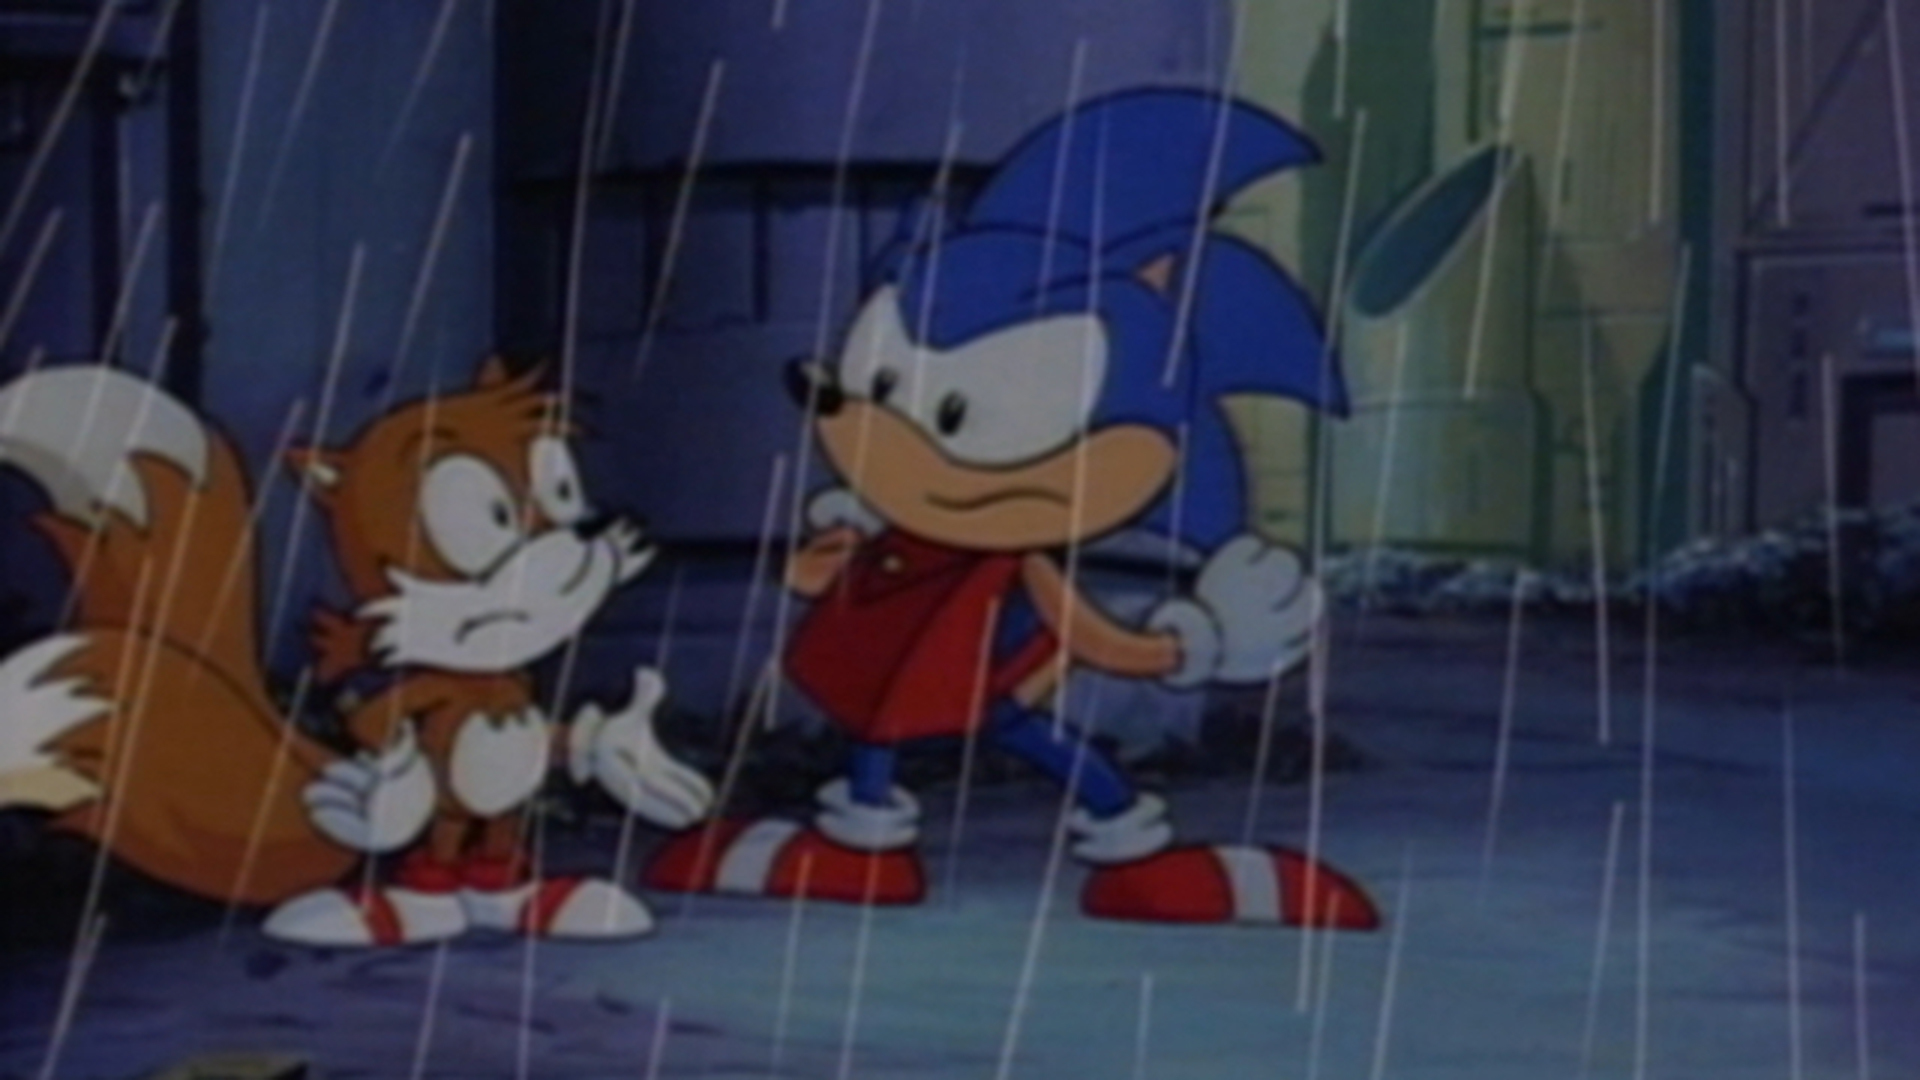 Watch Sonic The Hedgehog Season 1 Episode 1 Heads Or Tails Full Show On Cbs All Access